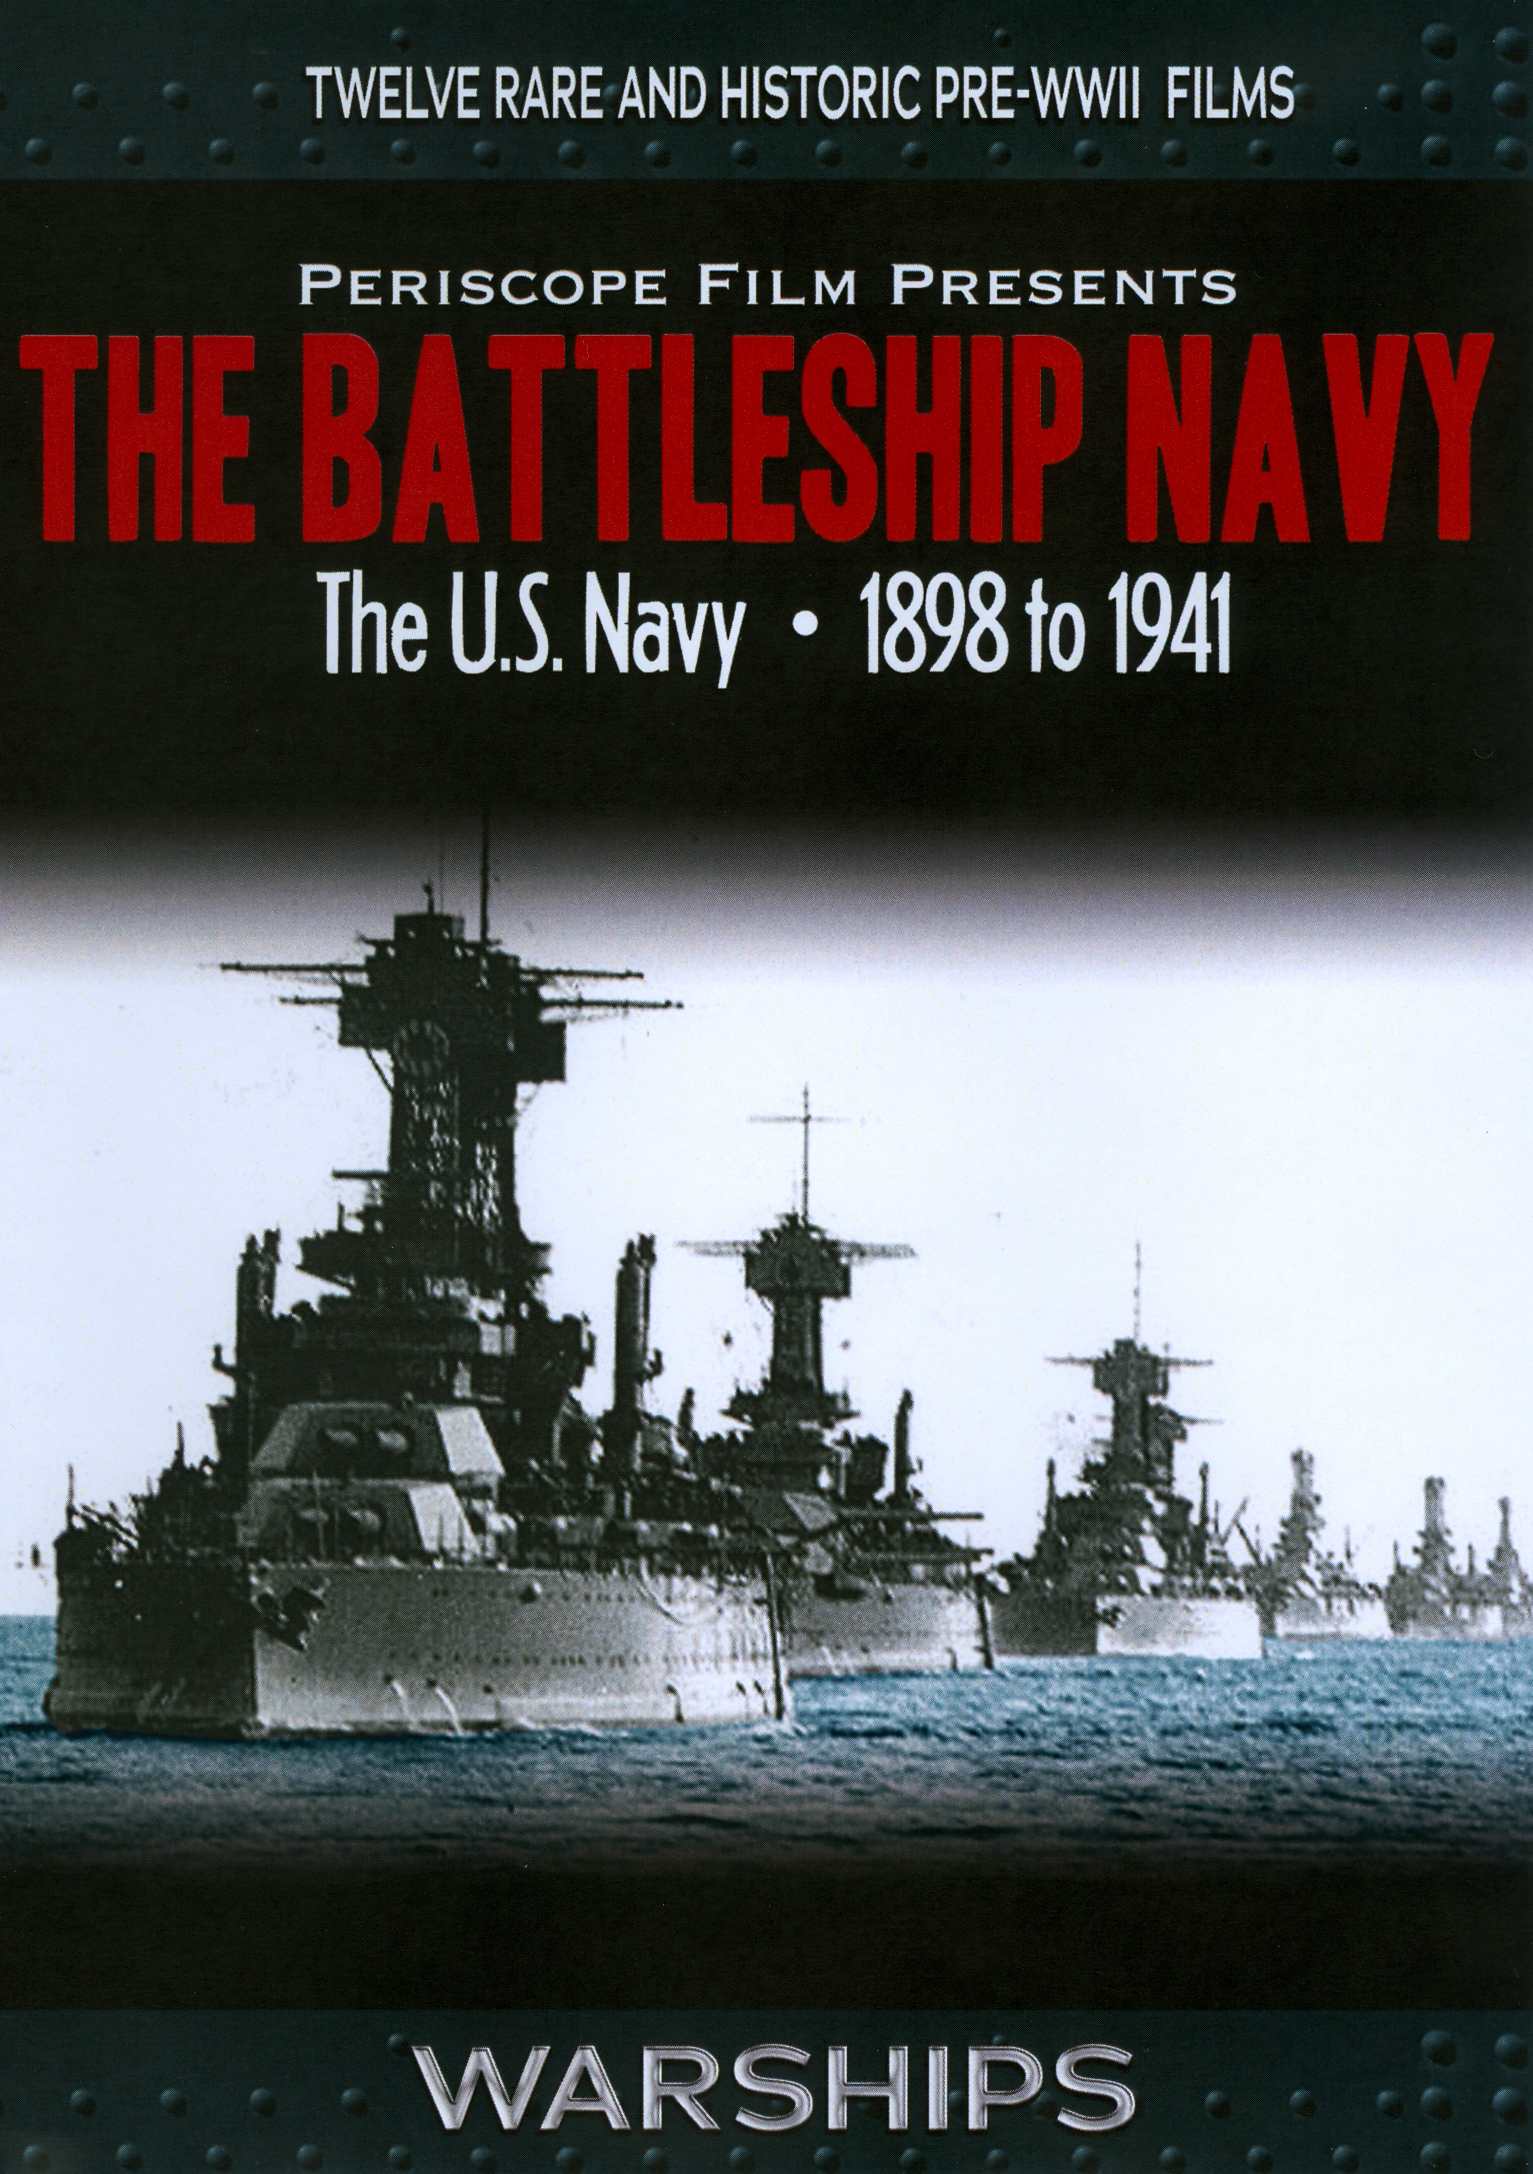 Battleship Navy: The U.S. Navy: 1898 To 1941